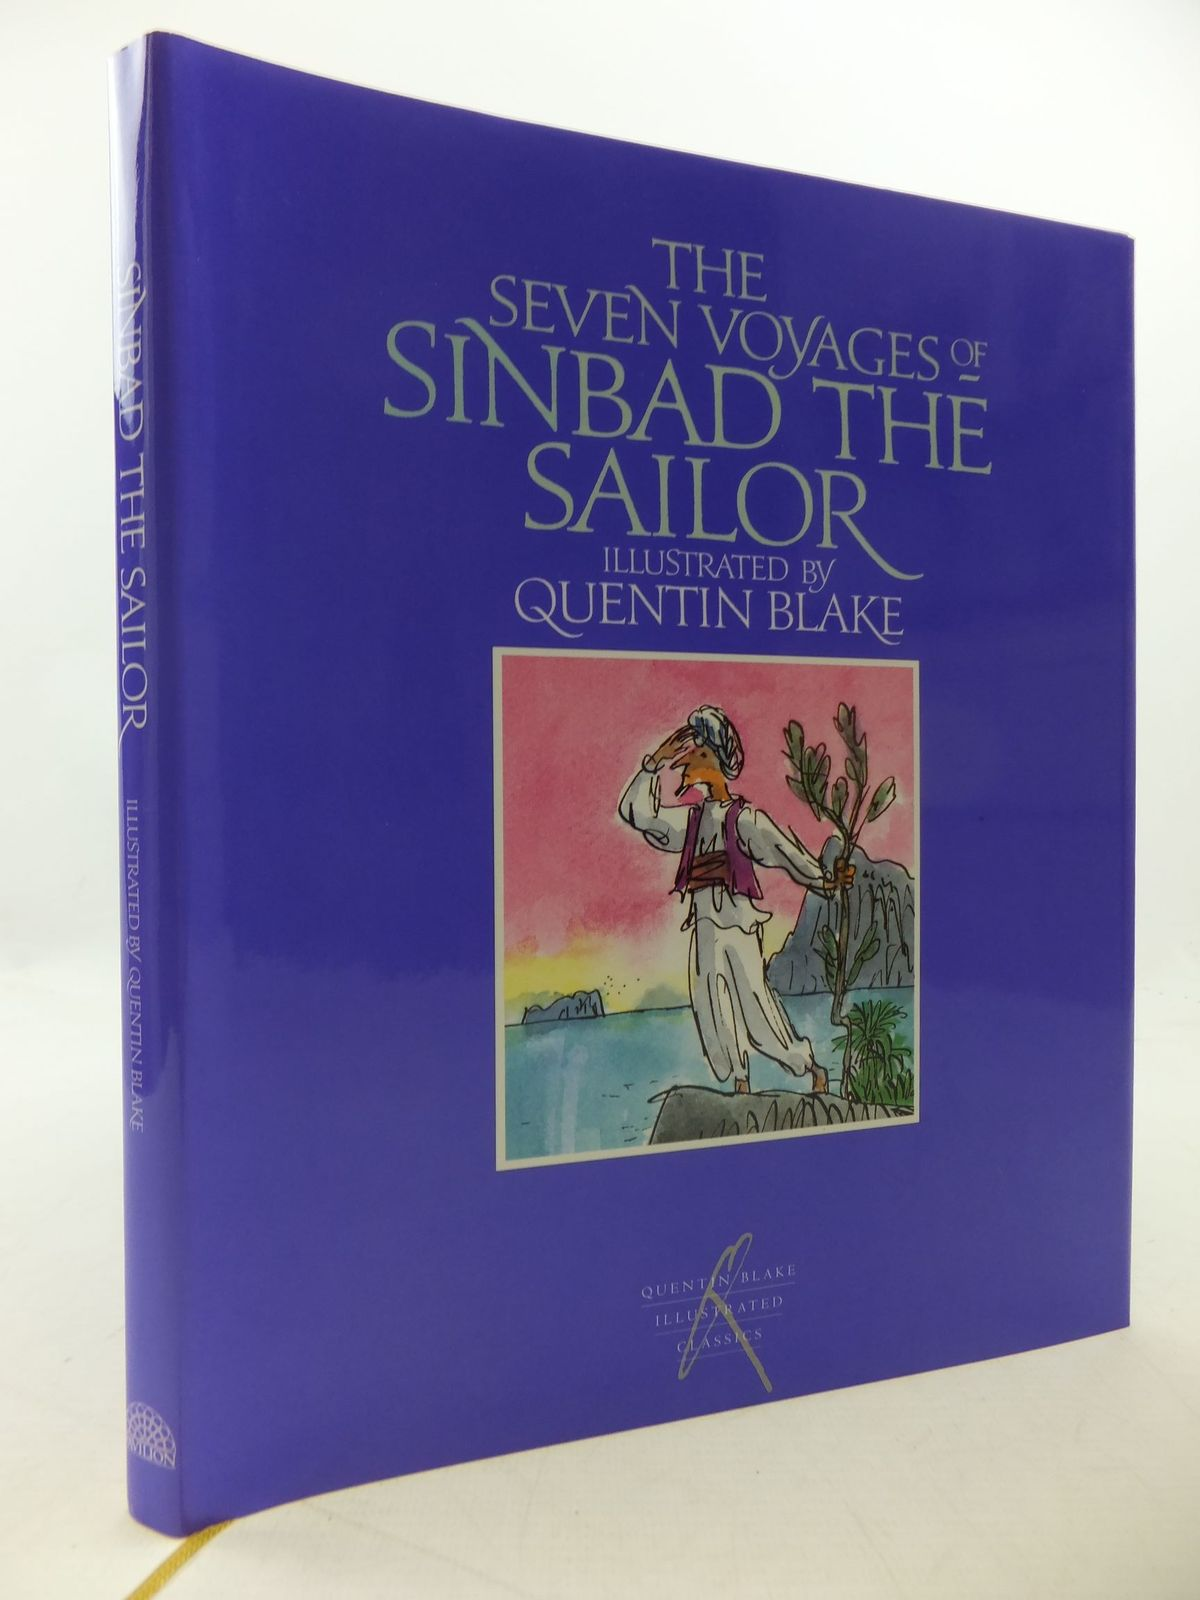 Photo of THE SEVEN VOYAGES OF SINBAD THE SAILOR written by Yeoman, John illustrated by Blake, Quentin published by Pavilion Books Ltd. (STOCK CODE: 1710161)  for sale by Stella & Rose's Books